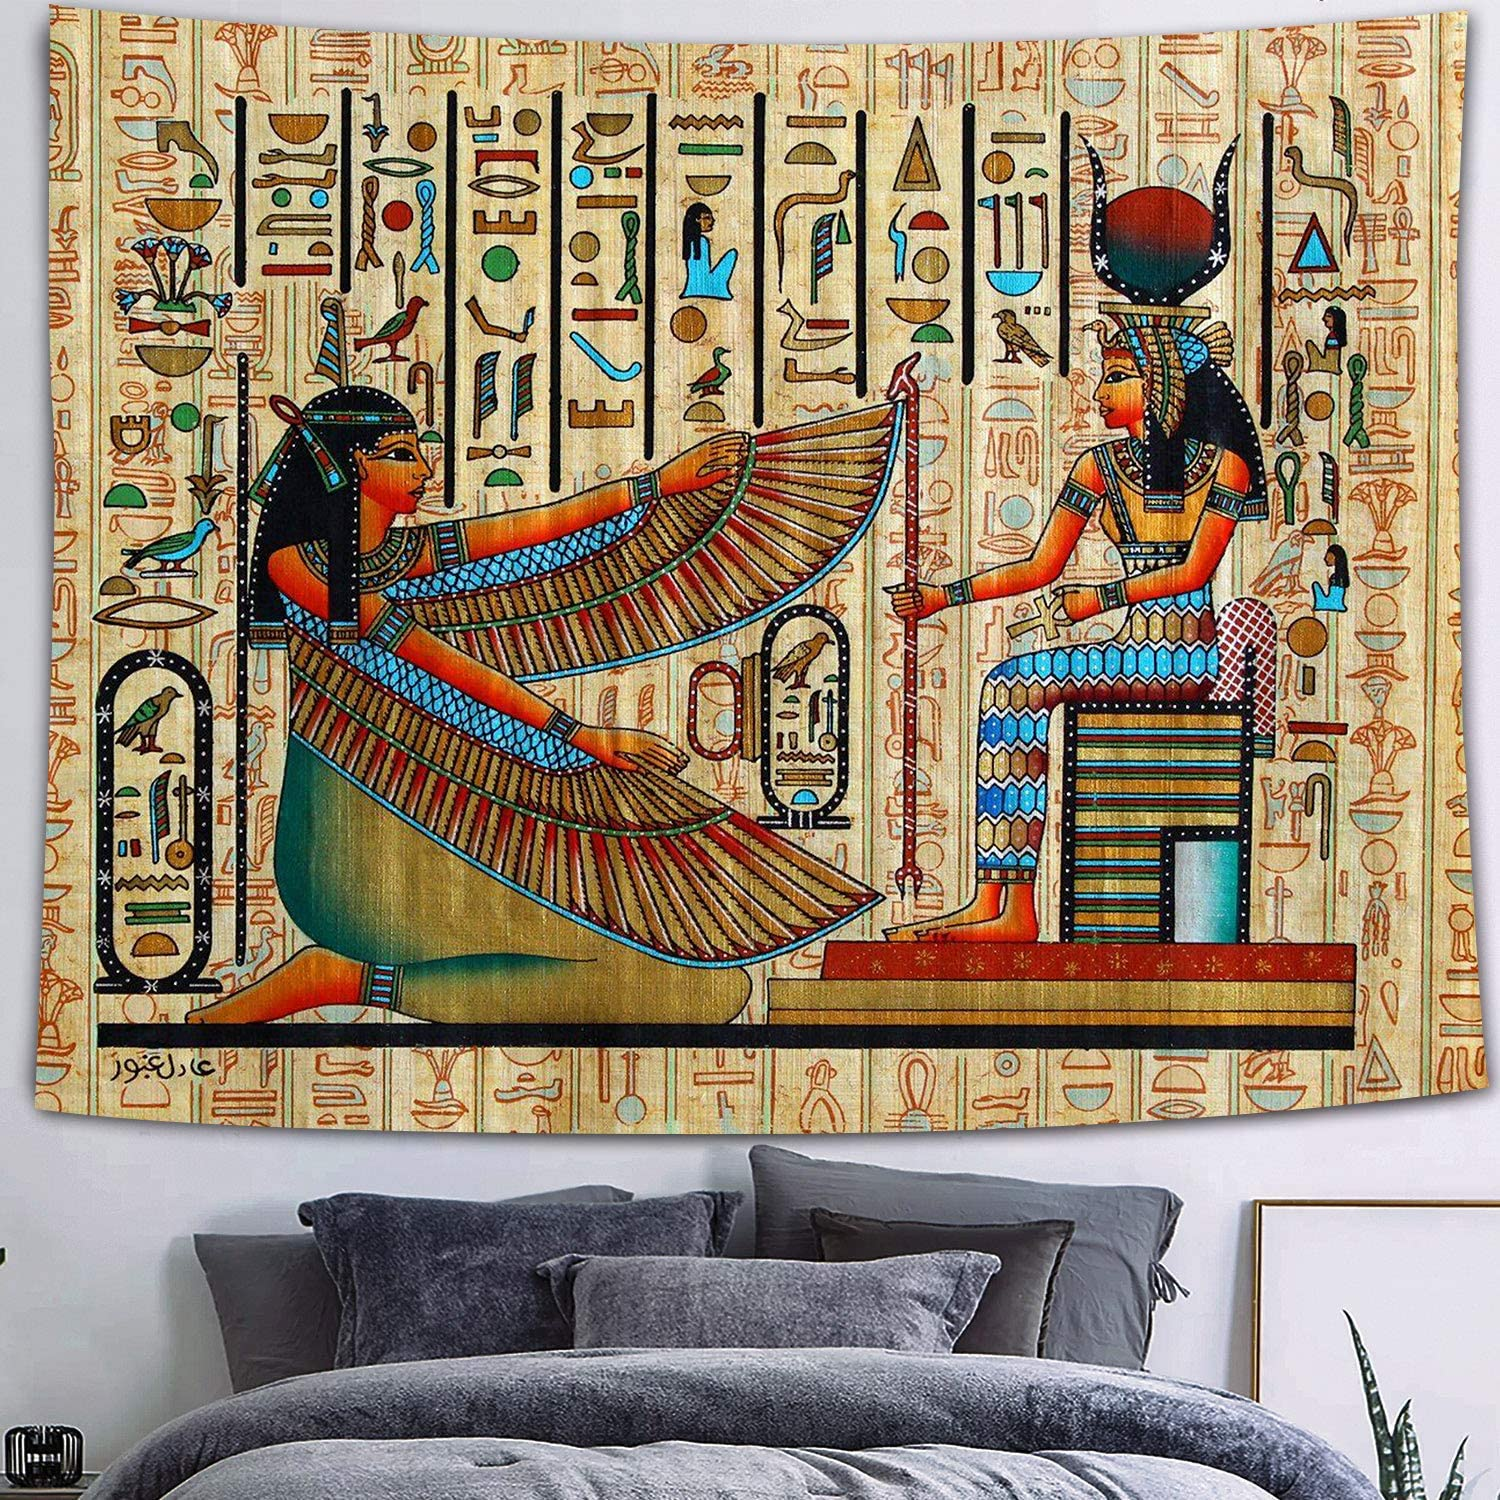 FEASRT Egyptian Selling Gods Tapestry Ancient Hieroglyphic 70% OFF Outlet Wall